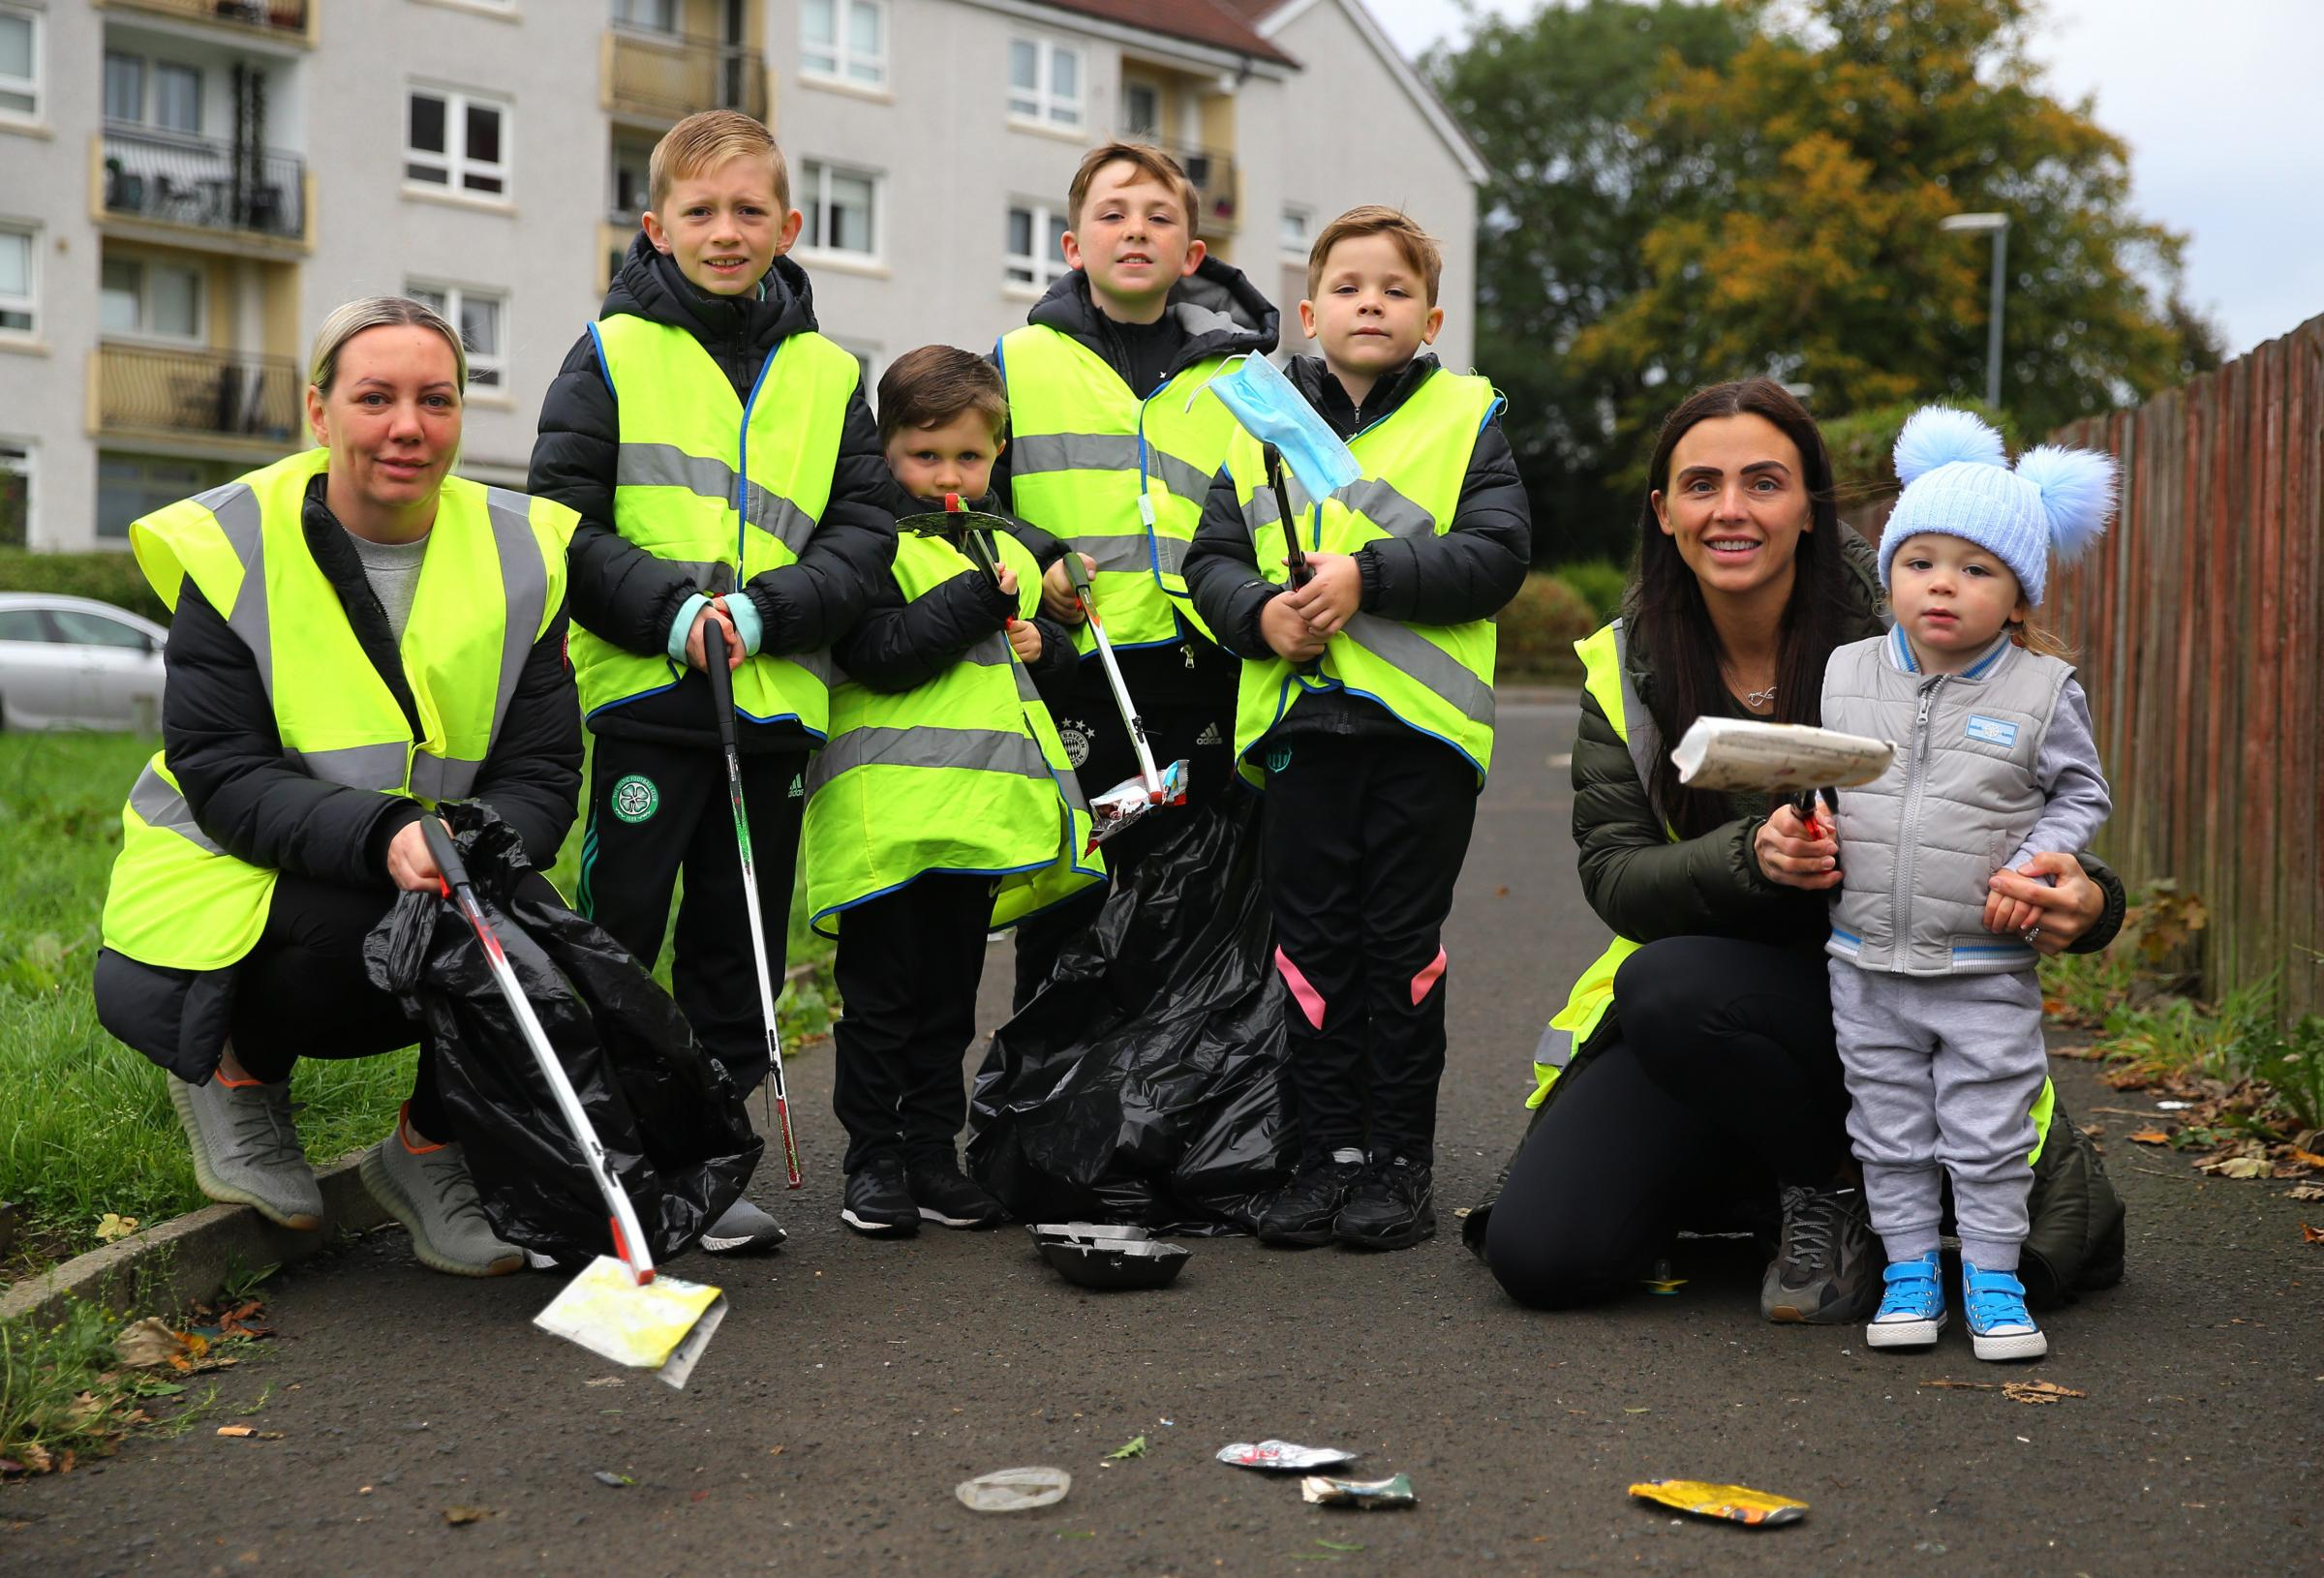 Meet the Glasgow kids and their mums cleaning up their area